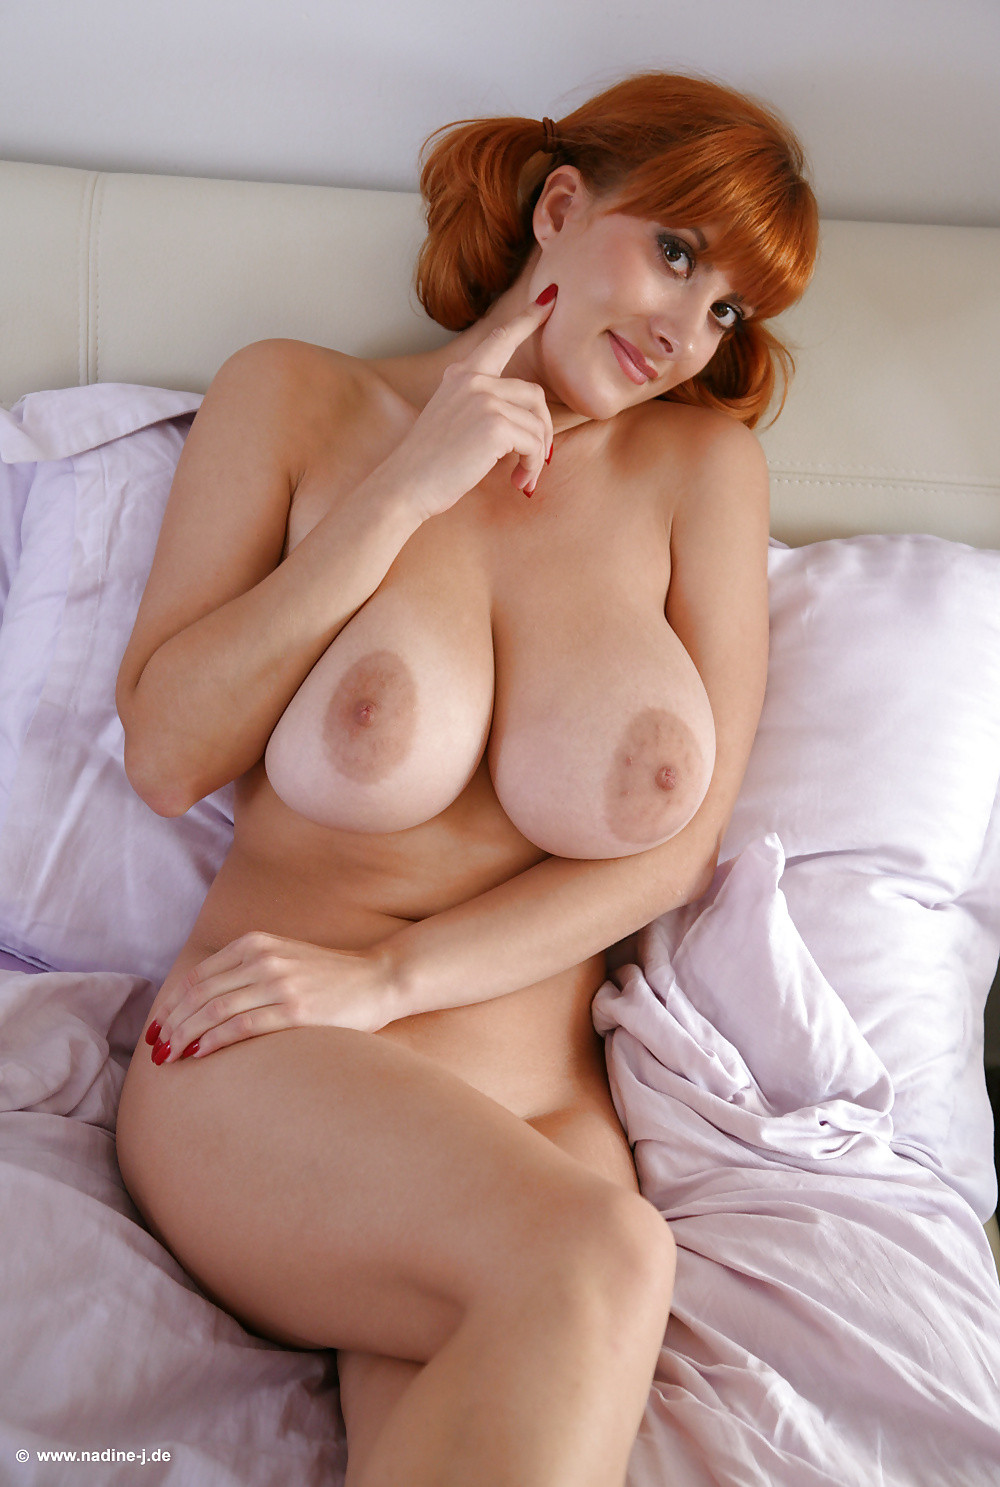 Apologise, irene nude valory busty you have truly